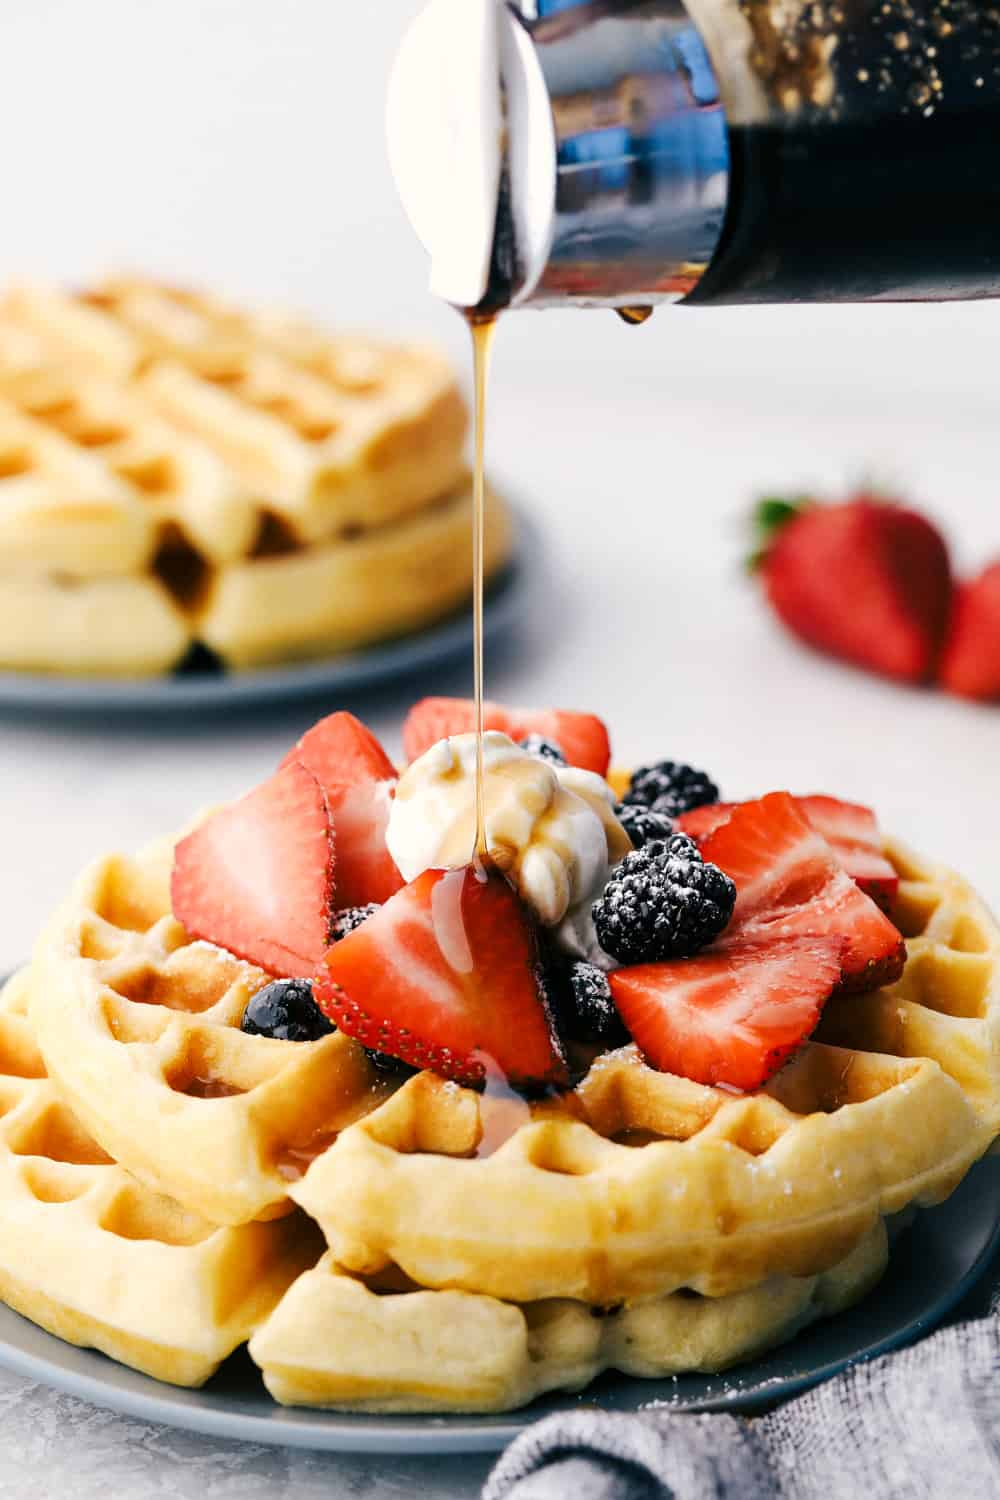 Pouring syrup over waffles with fruit and whipped cream.